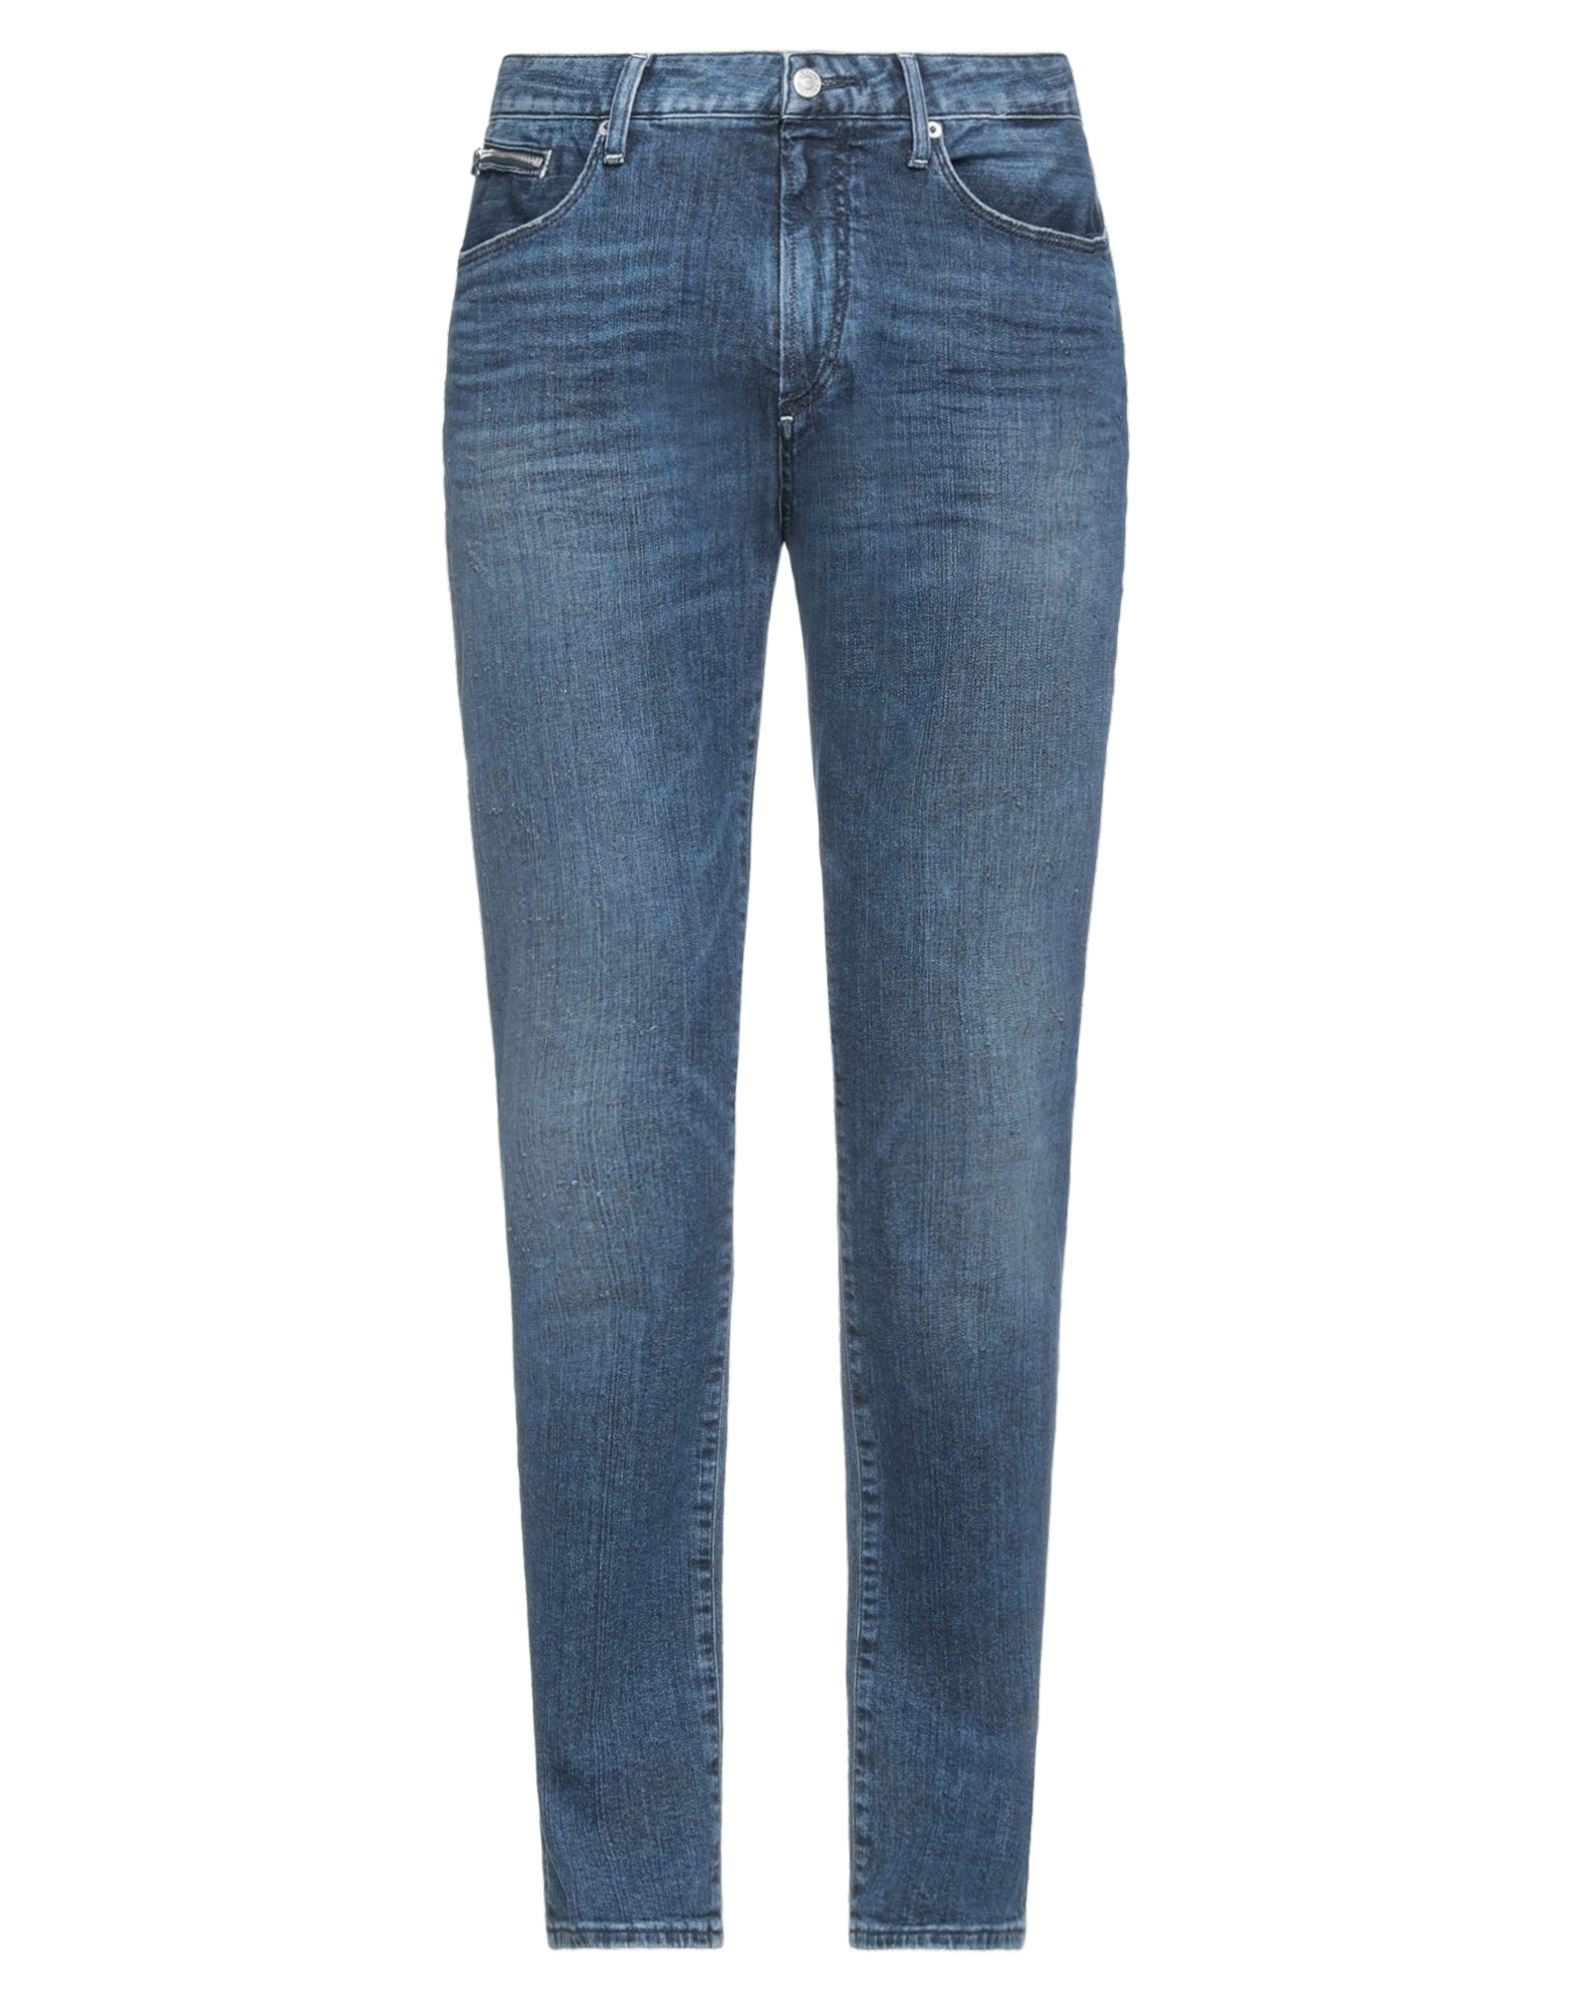 ARMANI EXCHANGE Denim pants - Item 42840386